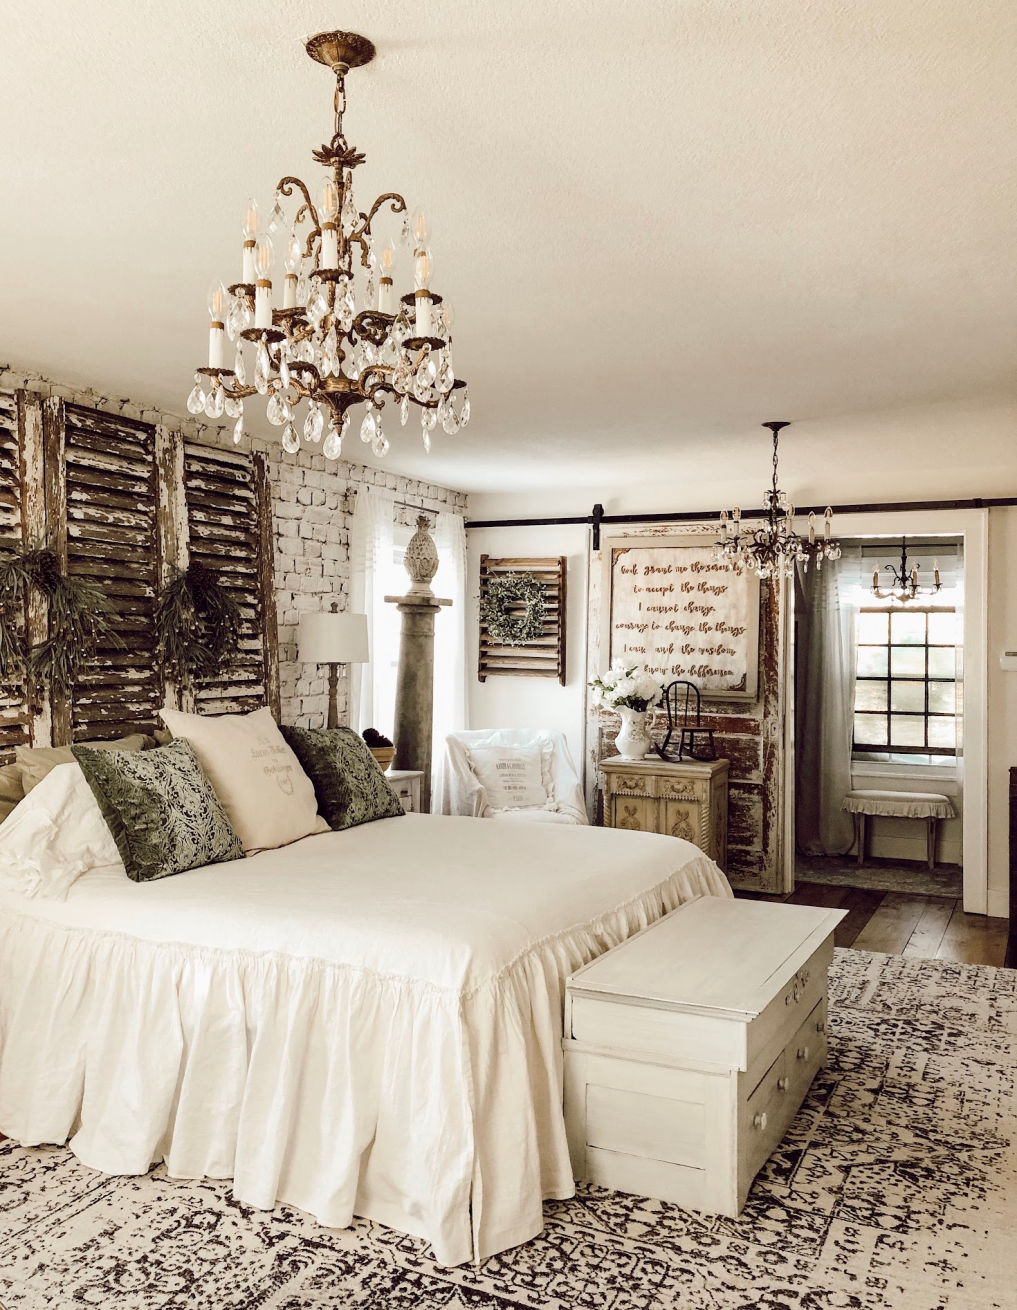 Farmhouse bedroom with brick wallpaper and a shutter headboard #farmhouse #farmhousedecor #farmhousebedroom #vintagedecor #vintagestyle #diyideas #diybed #bed #headboard